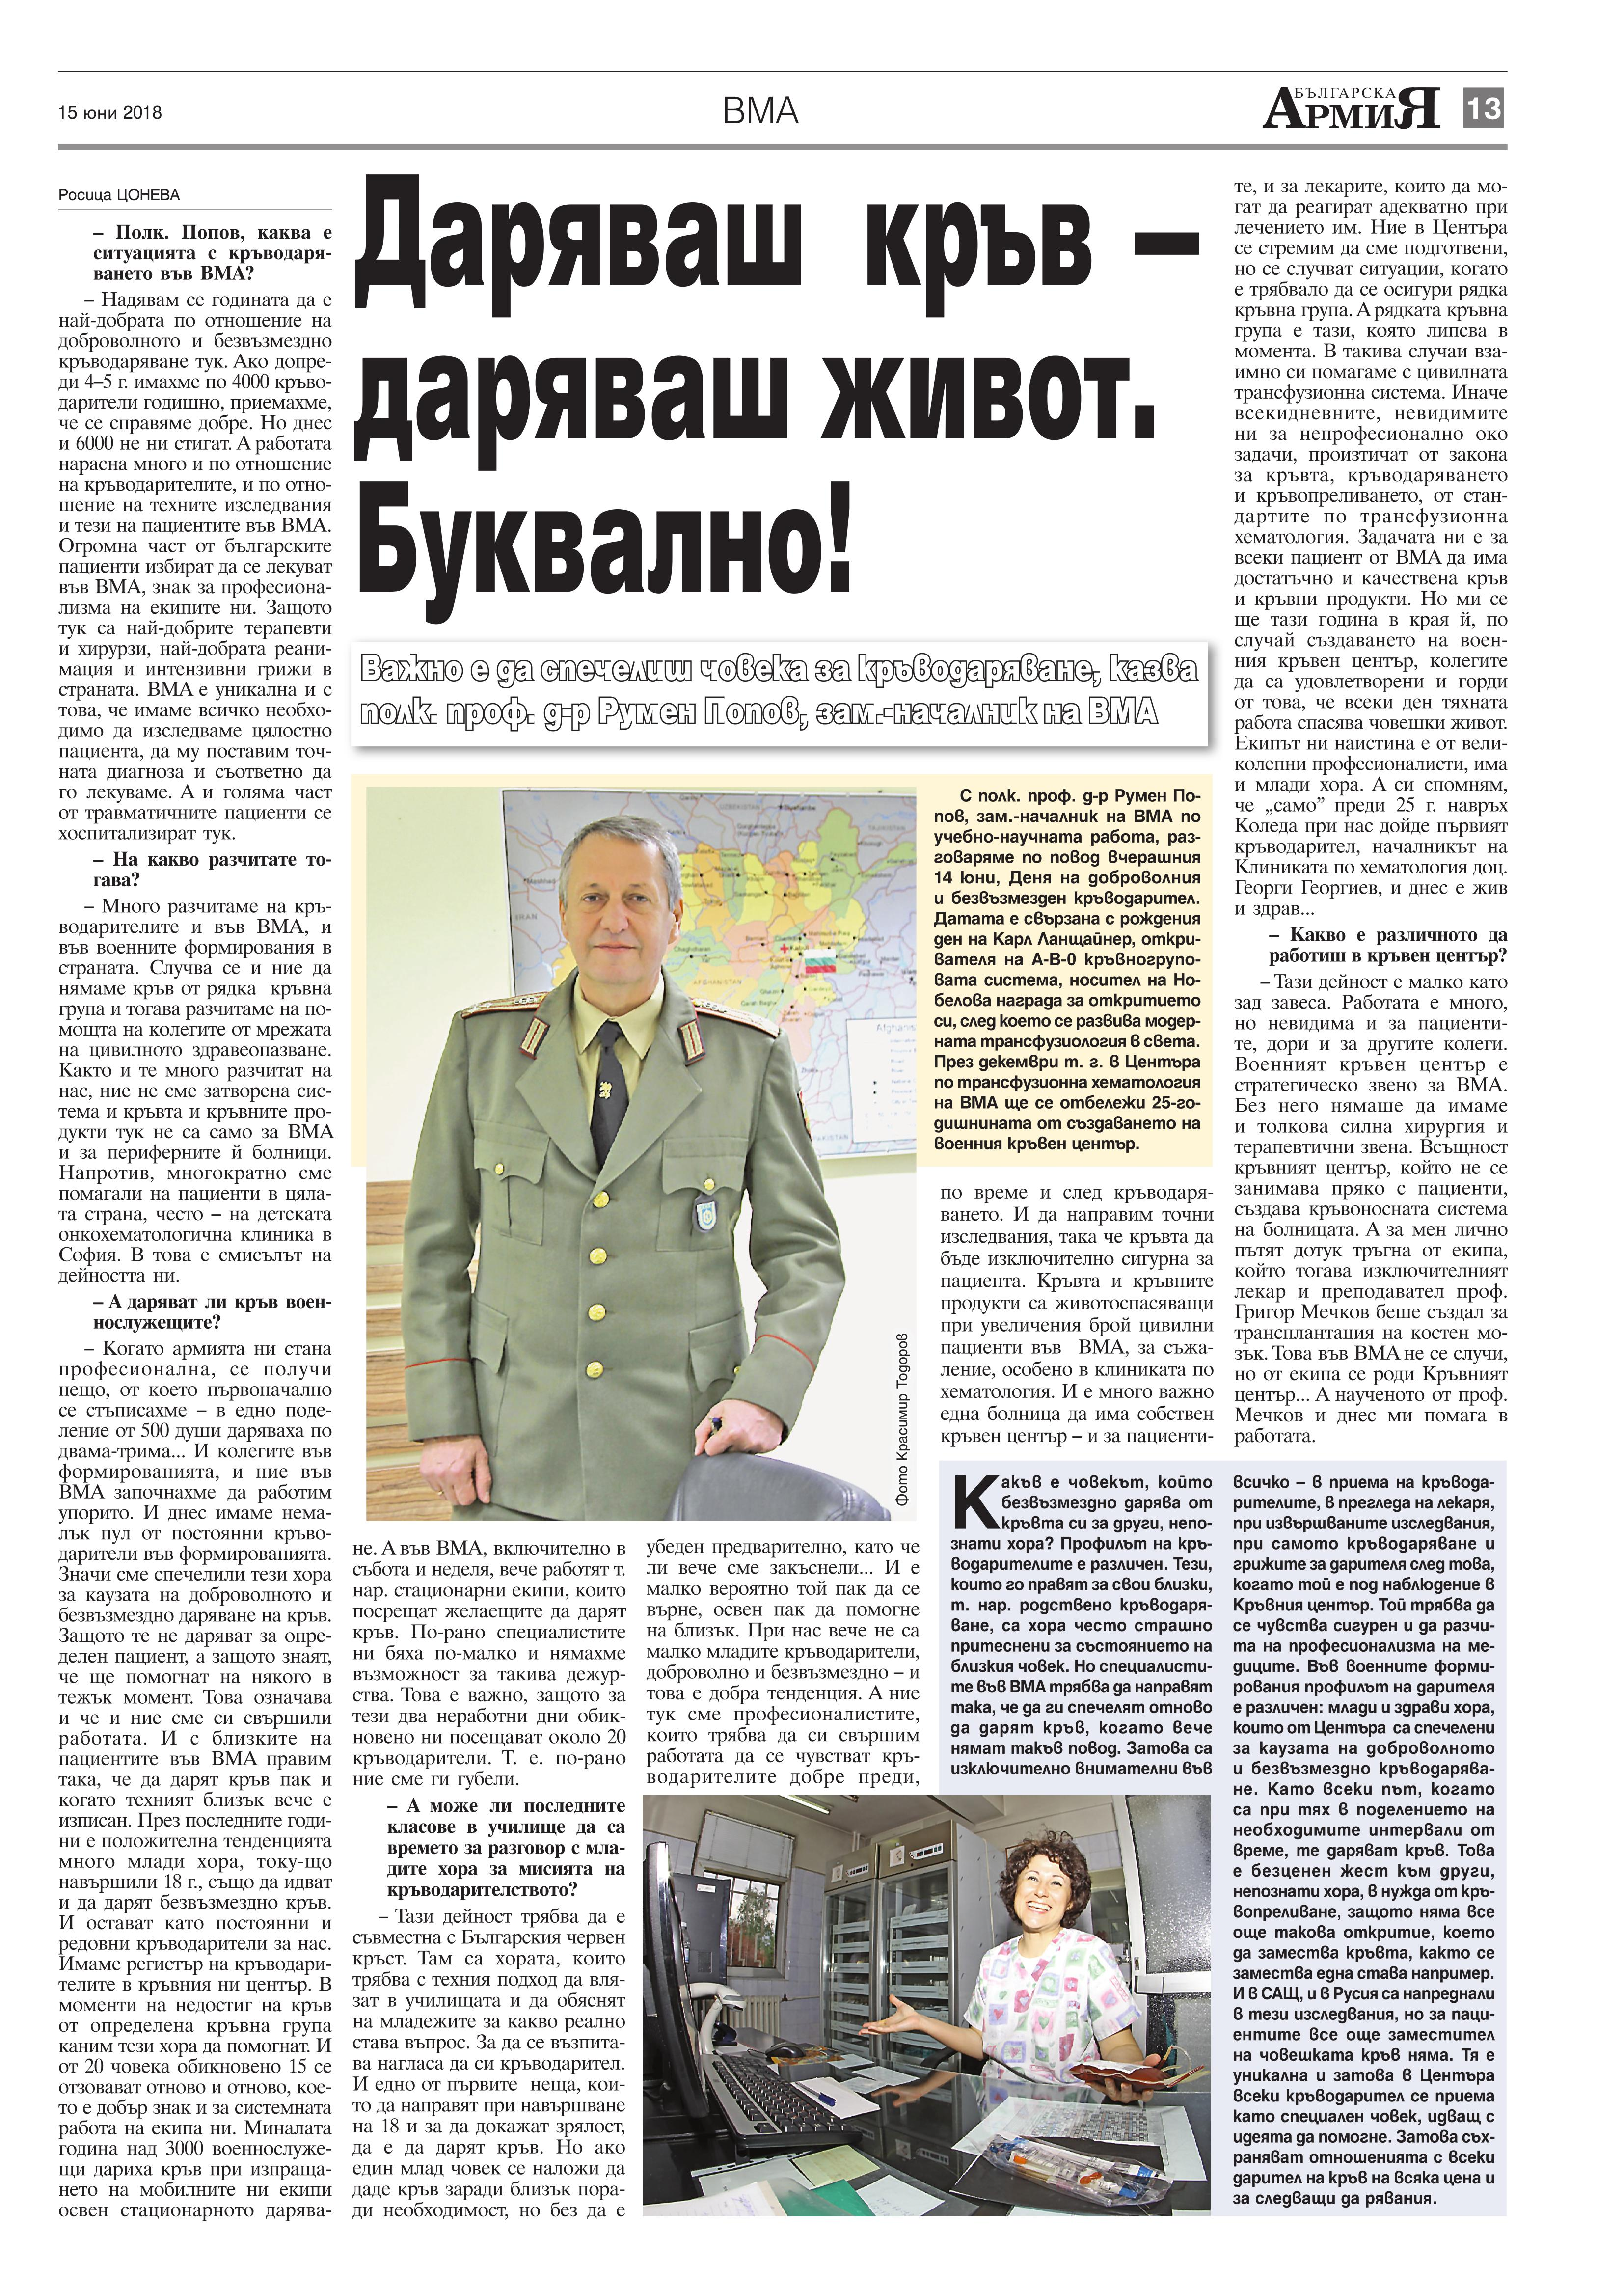 http://armymedia.bg/wp-content/uploads/2015/06/13.page1_-55.jpg